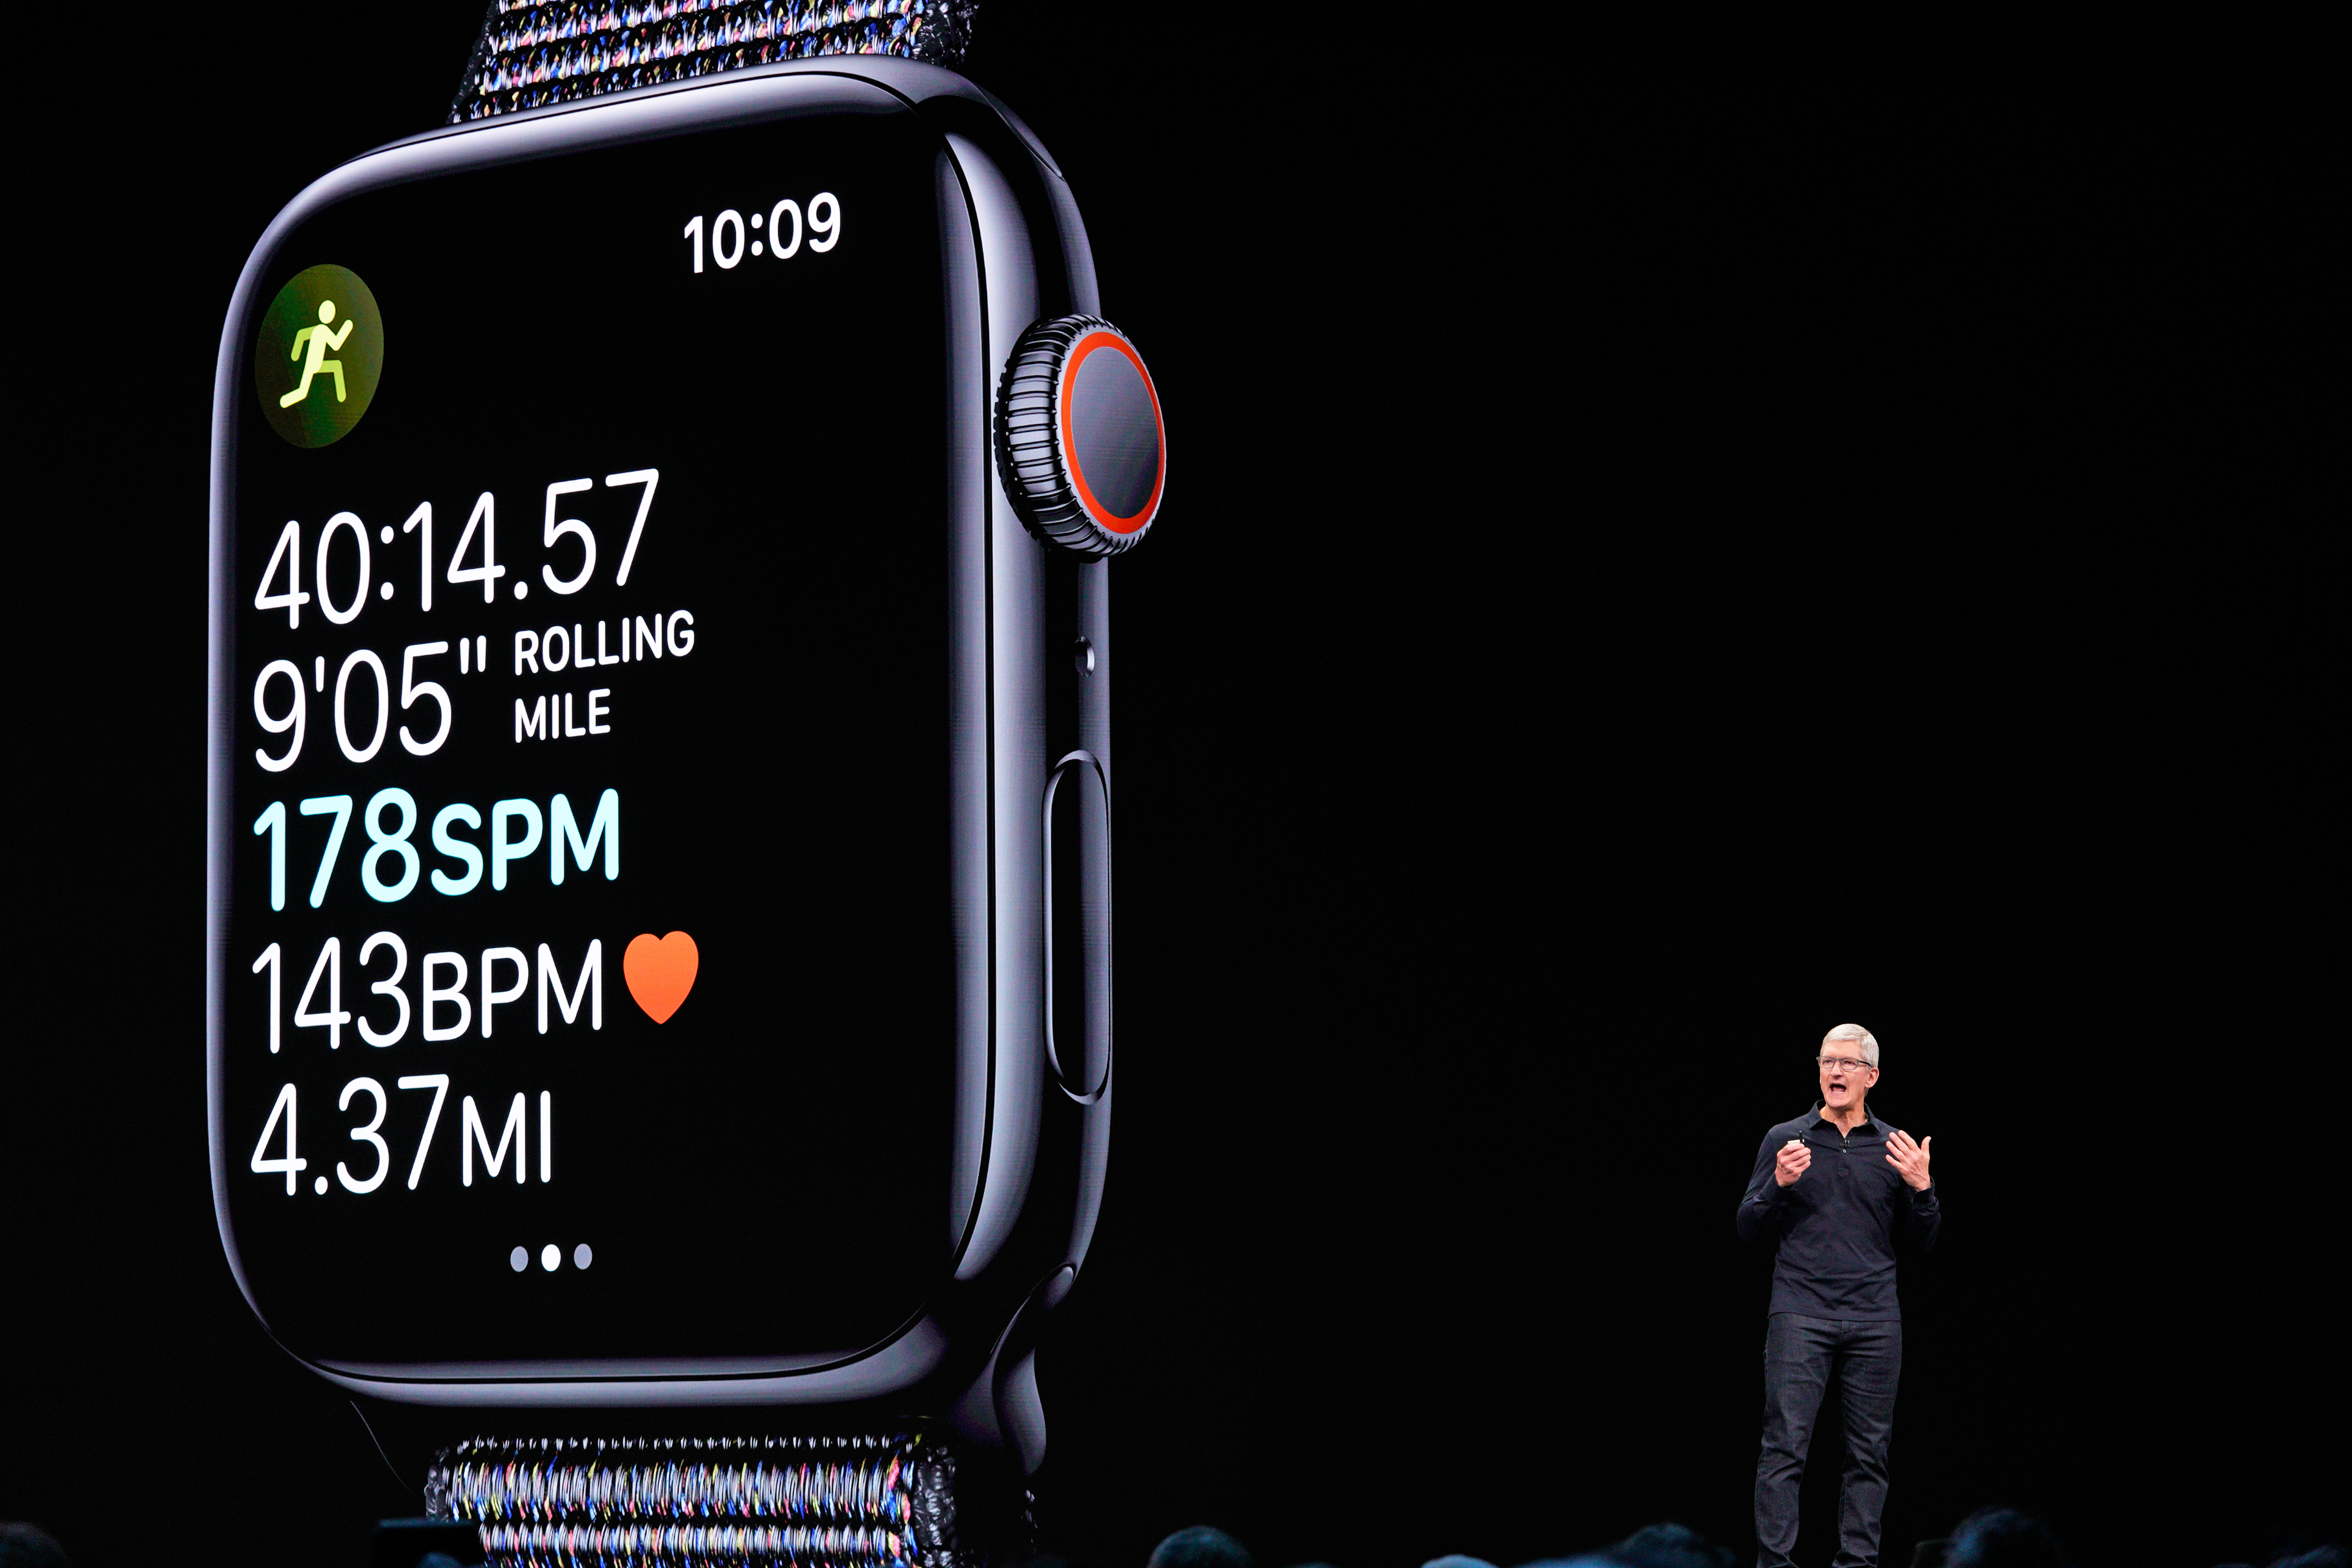 Apple CEO Tim Cook speaks about the Apple Watch during Apple's annual Worldwide Developers Conference in San Jose, California, U.S. June 3, 2019. REUTERS/Mason Trinca - HP1EF631D9RXK